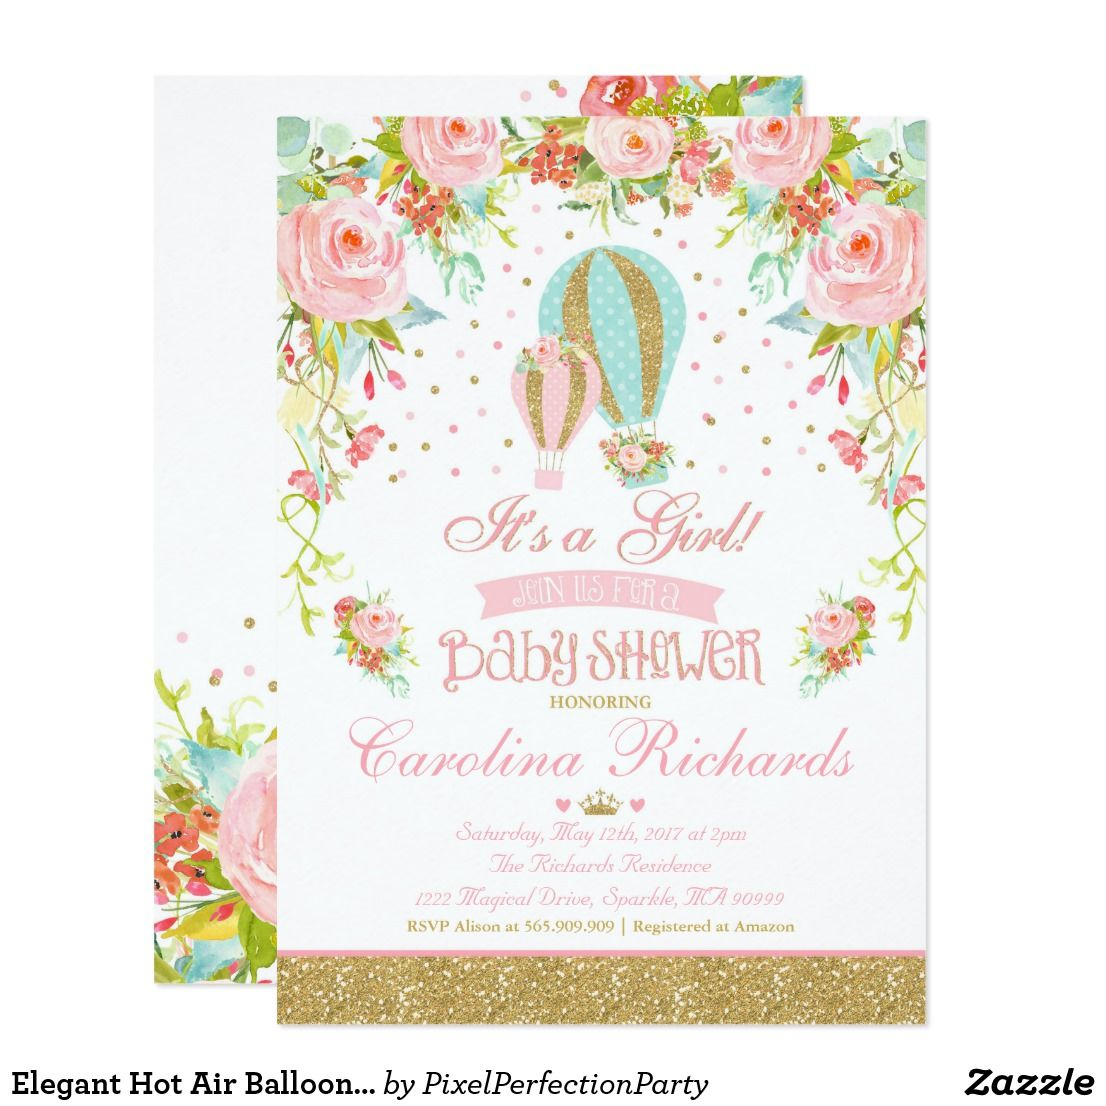 Elegant hot air balloon baby shower invitation baby shower elegant hot air balloon baby shower invitation filmwisefo Image collections